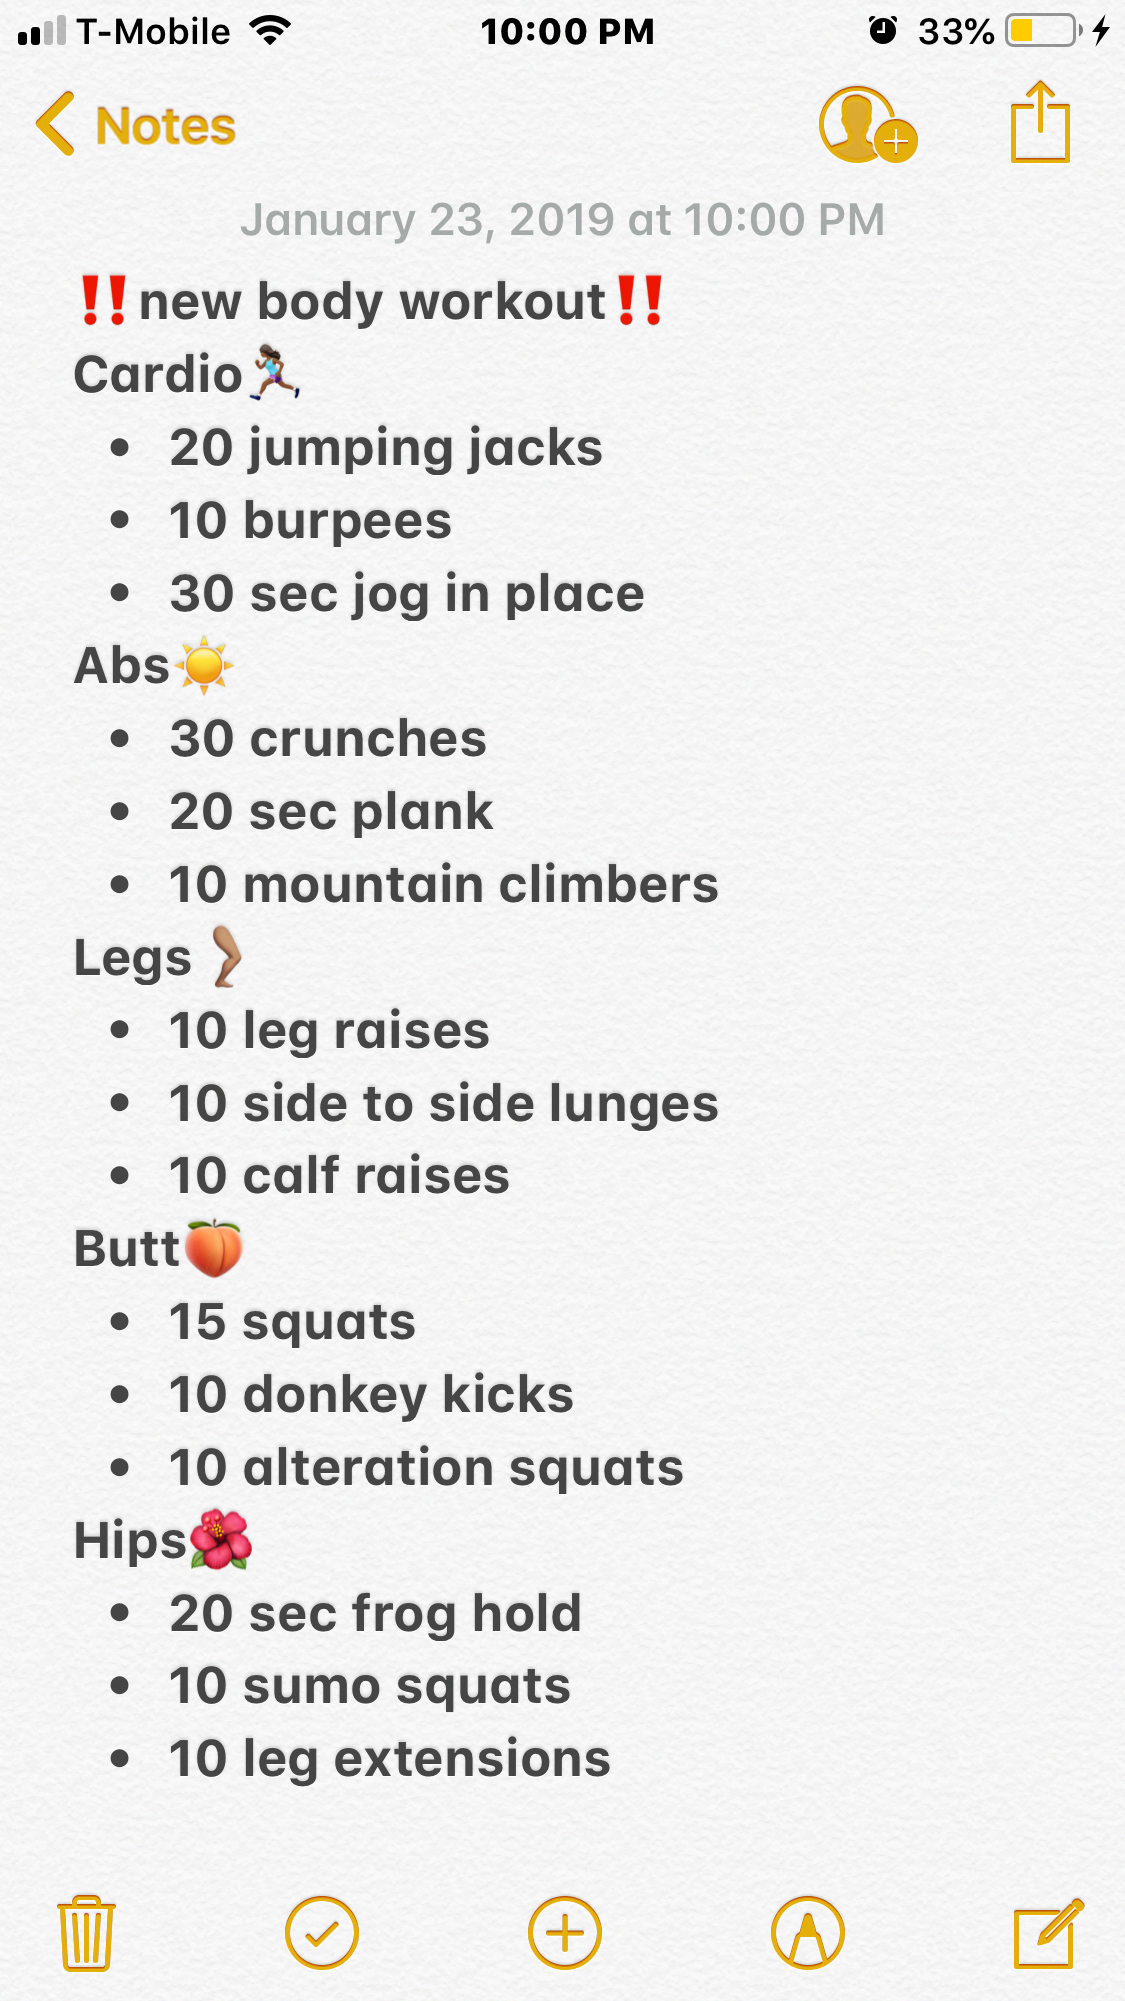 35 Workout Plans Prime Home Workout Advice To Lose The Weight Review The Healthy Summer Body Workouts Workout Plan Body Workout Plan